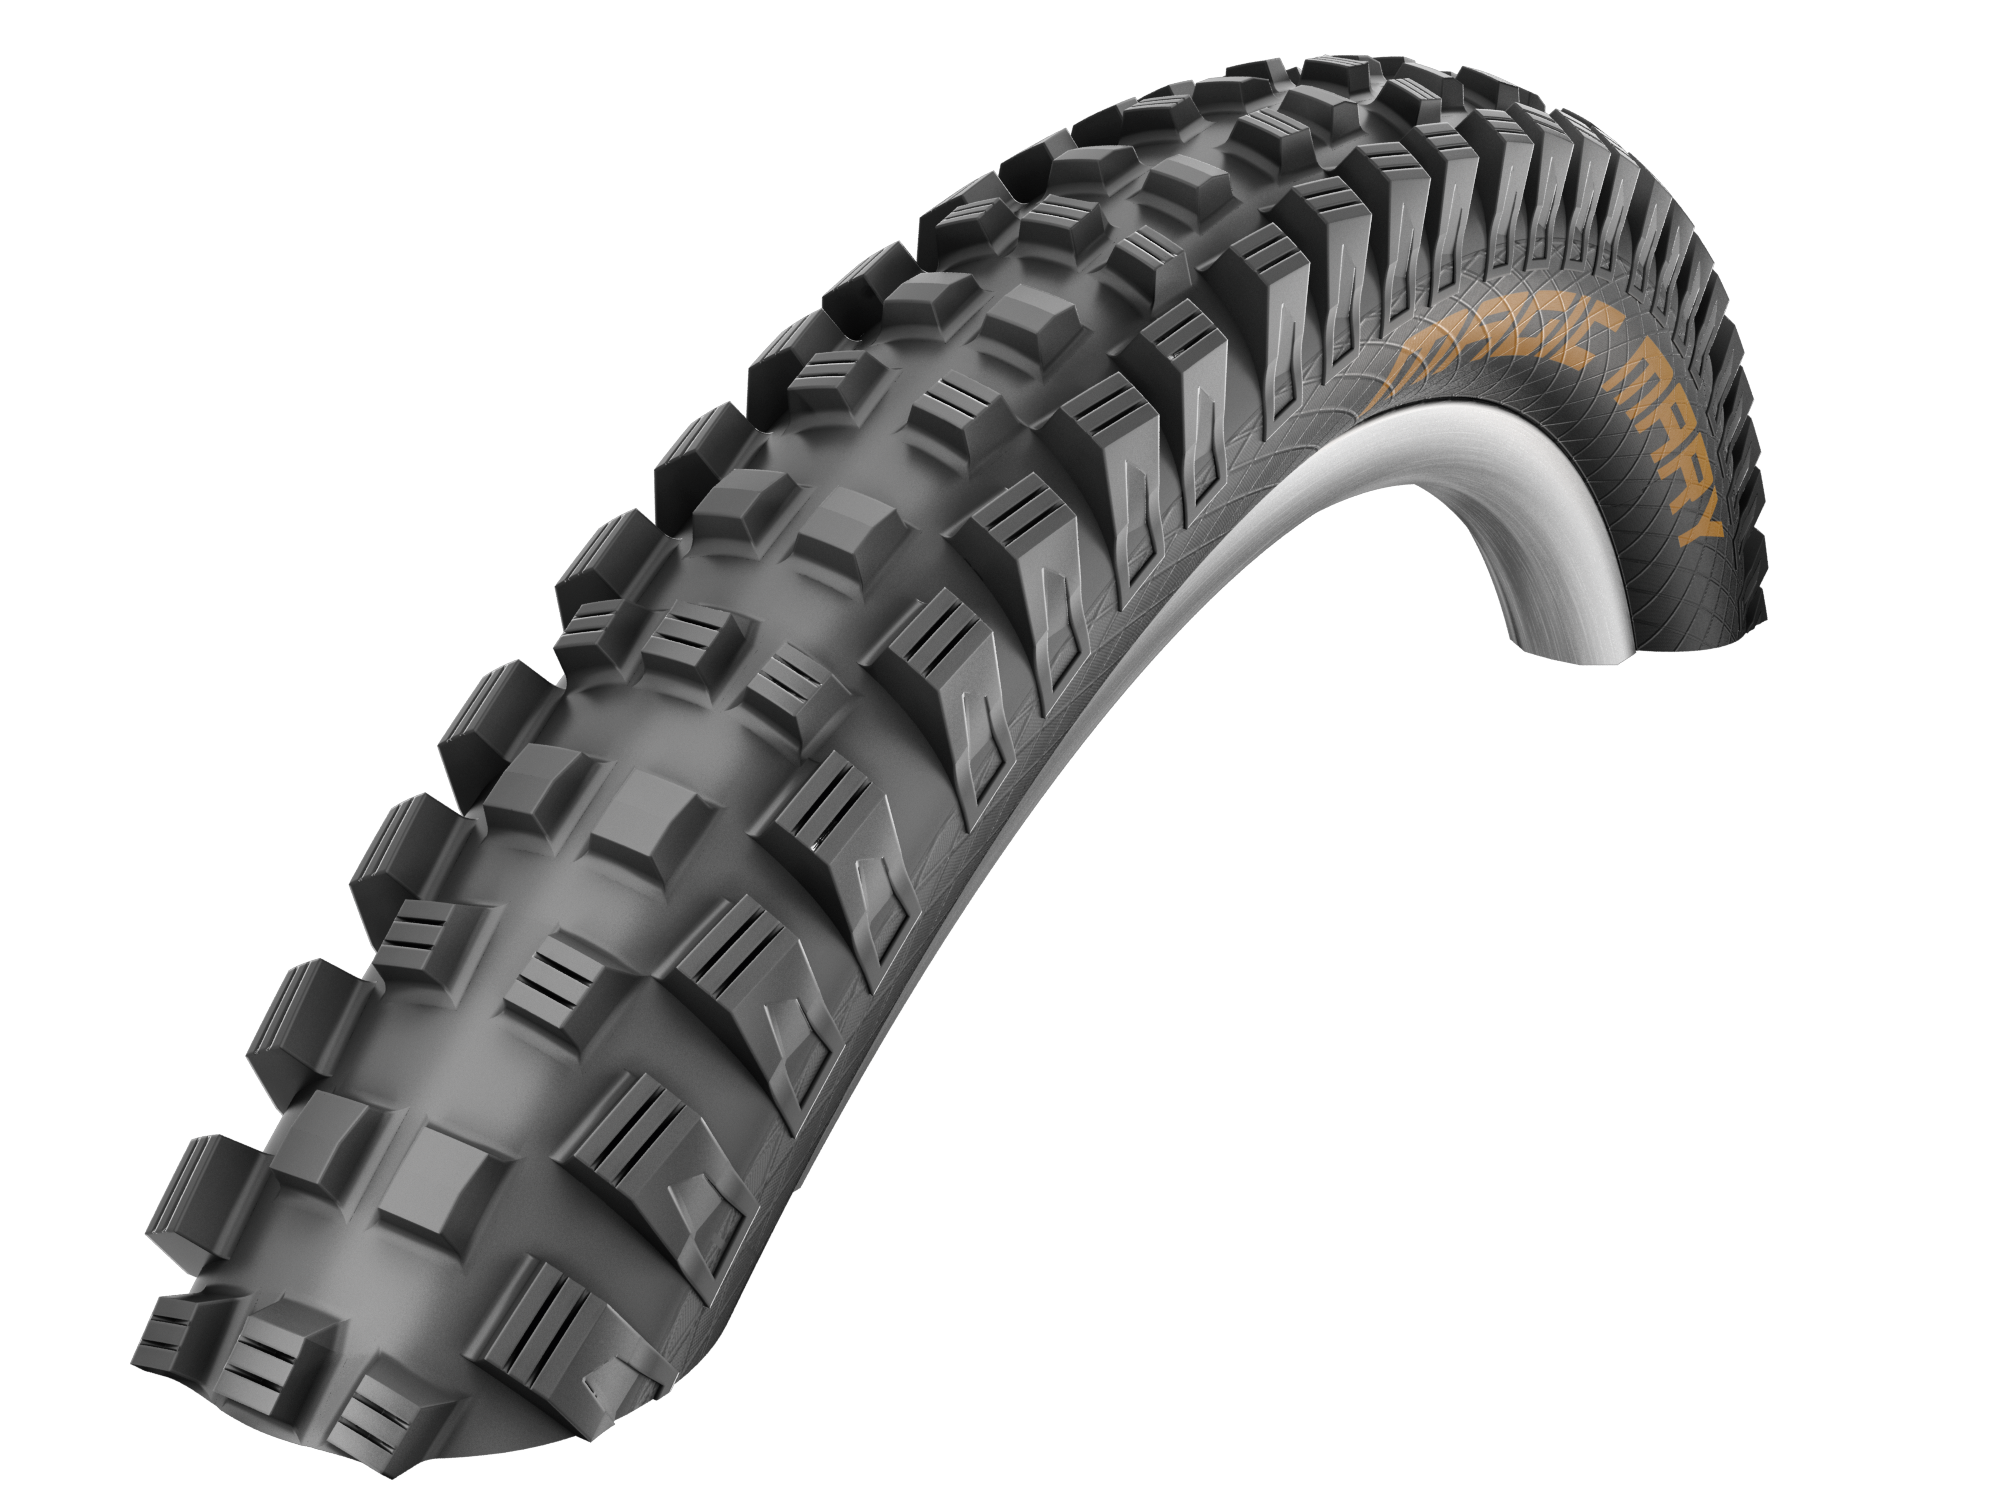 Schwalbe Magic Mary 26x2.35 Evolution VertStar Faltreifen